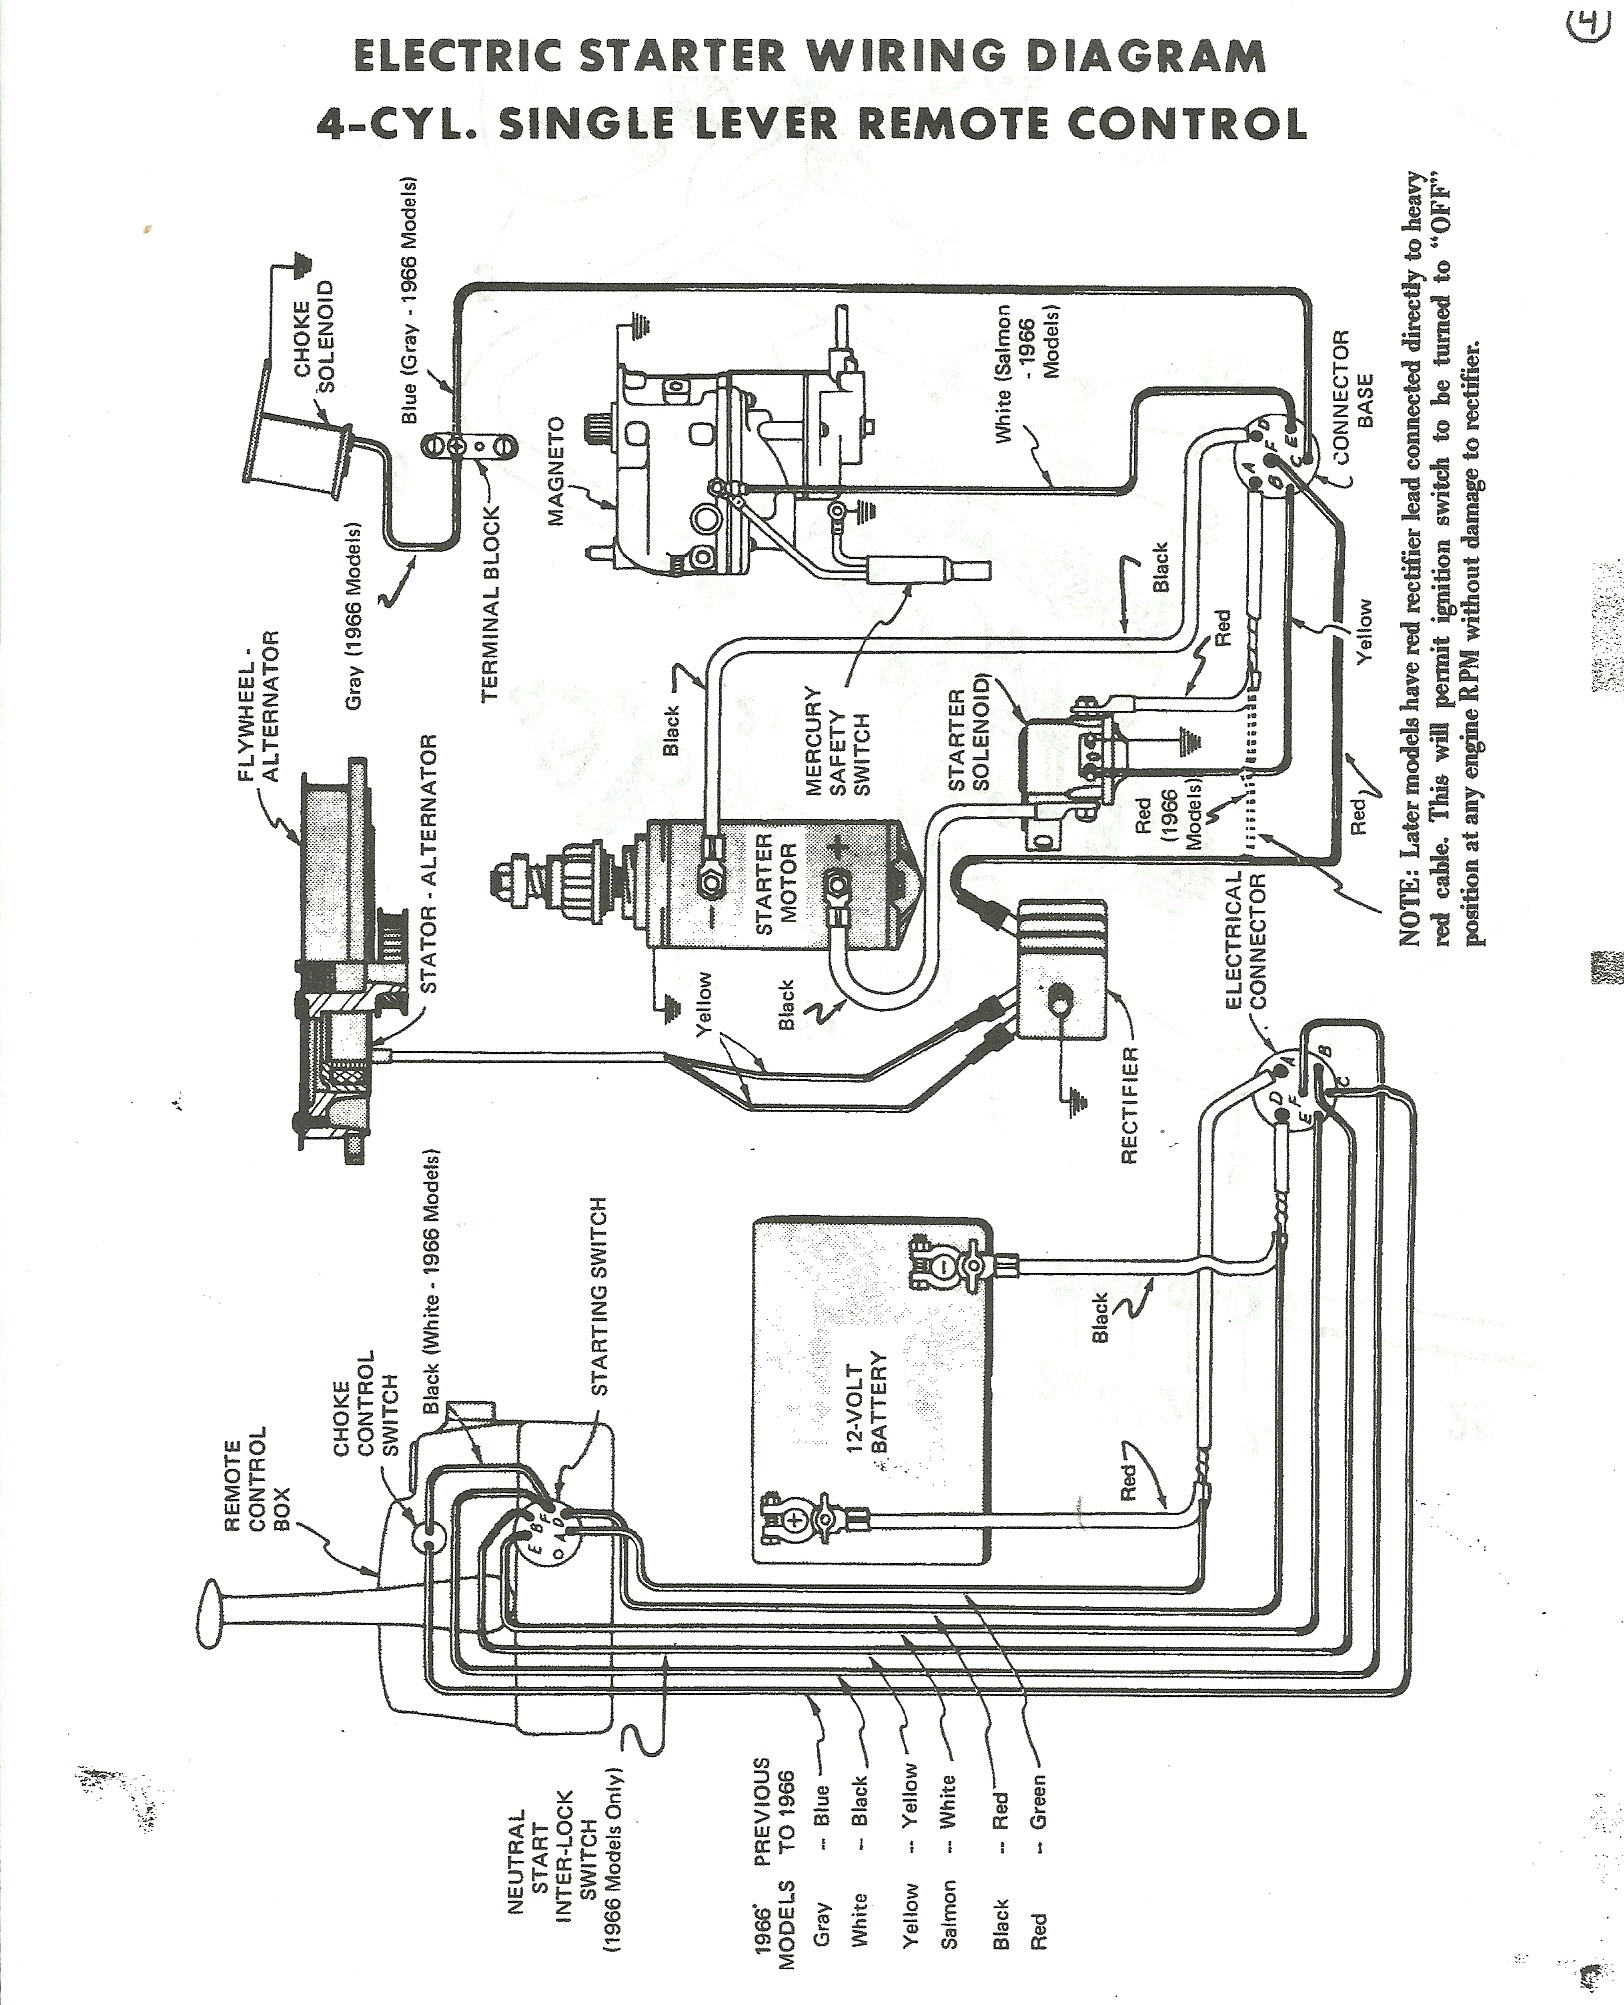 Key Switch Wire Diagram for A Mercury Outboaed with Chock I Have A 1965 Mercury 500 50 Hp Electric Start Using Boat Of Key Switch Wire Diagram for A Mercury Outboaed with Chock